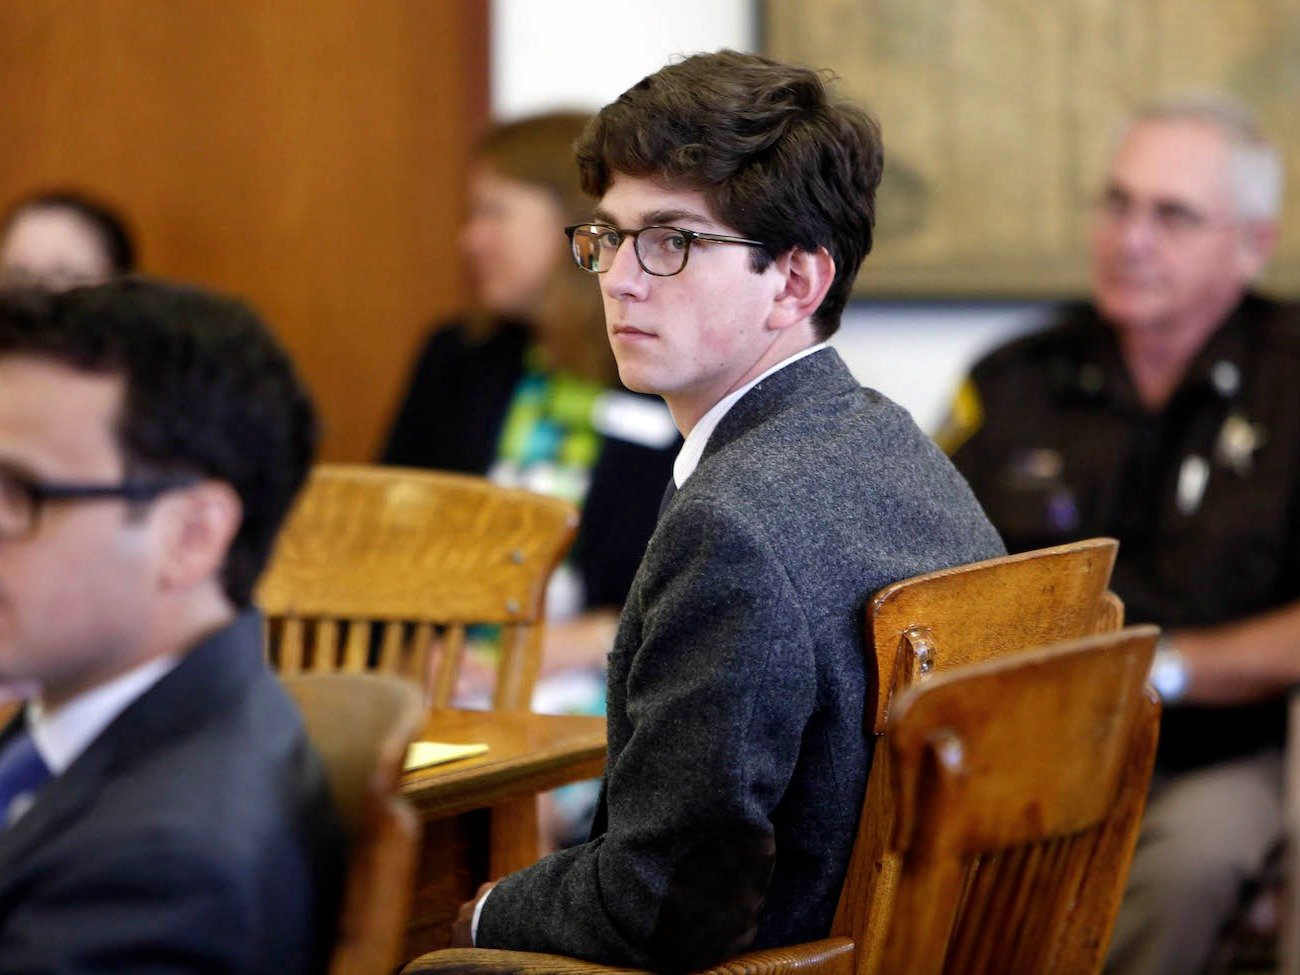 Owen Labrie St. Paul's School